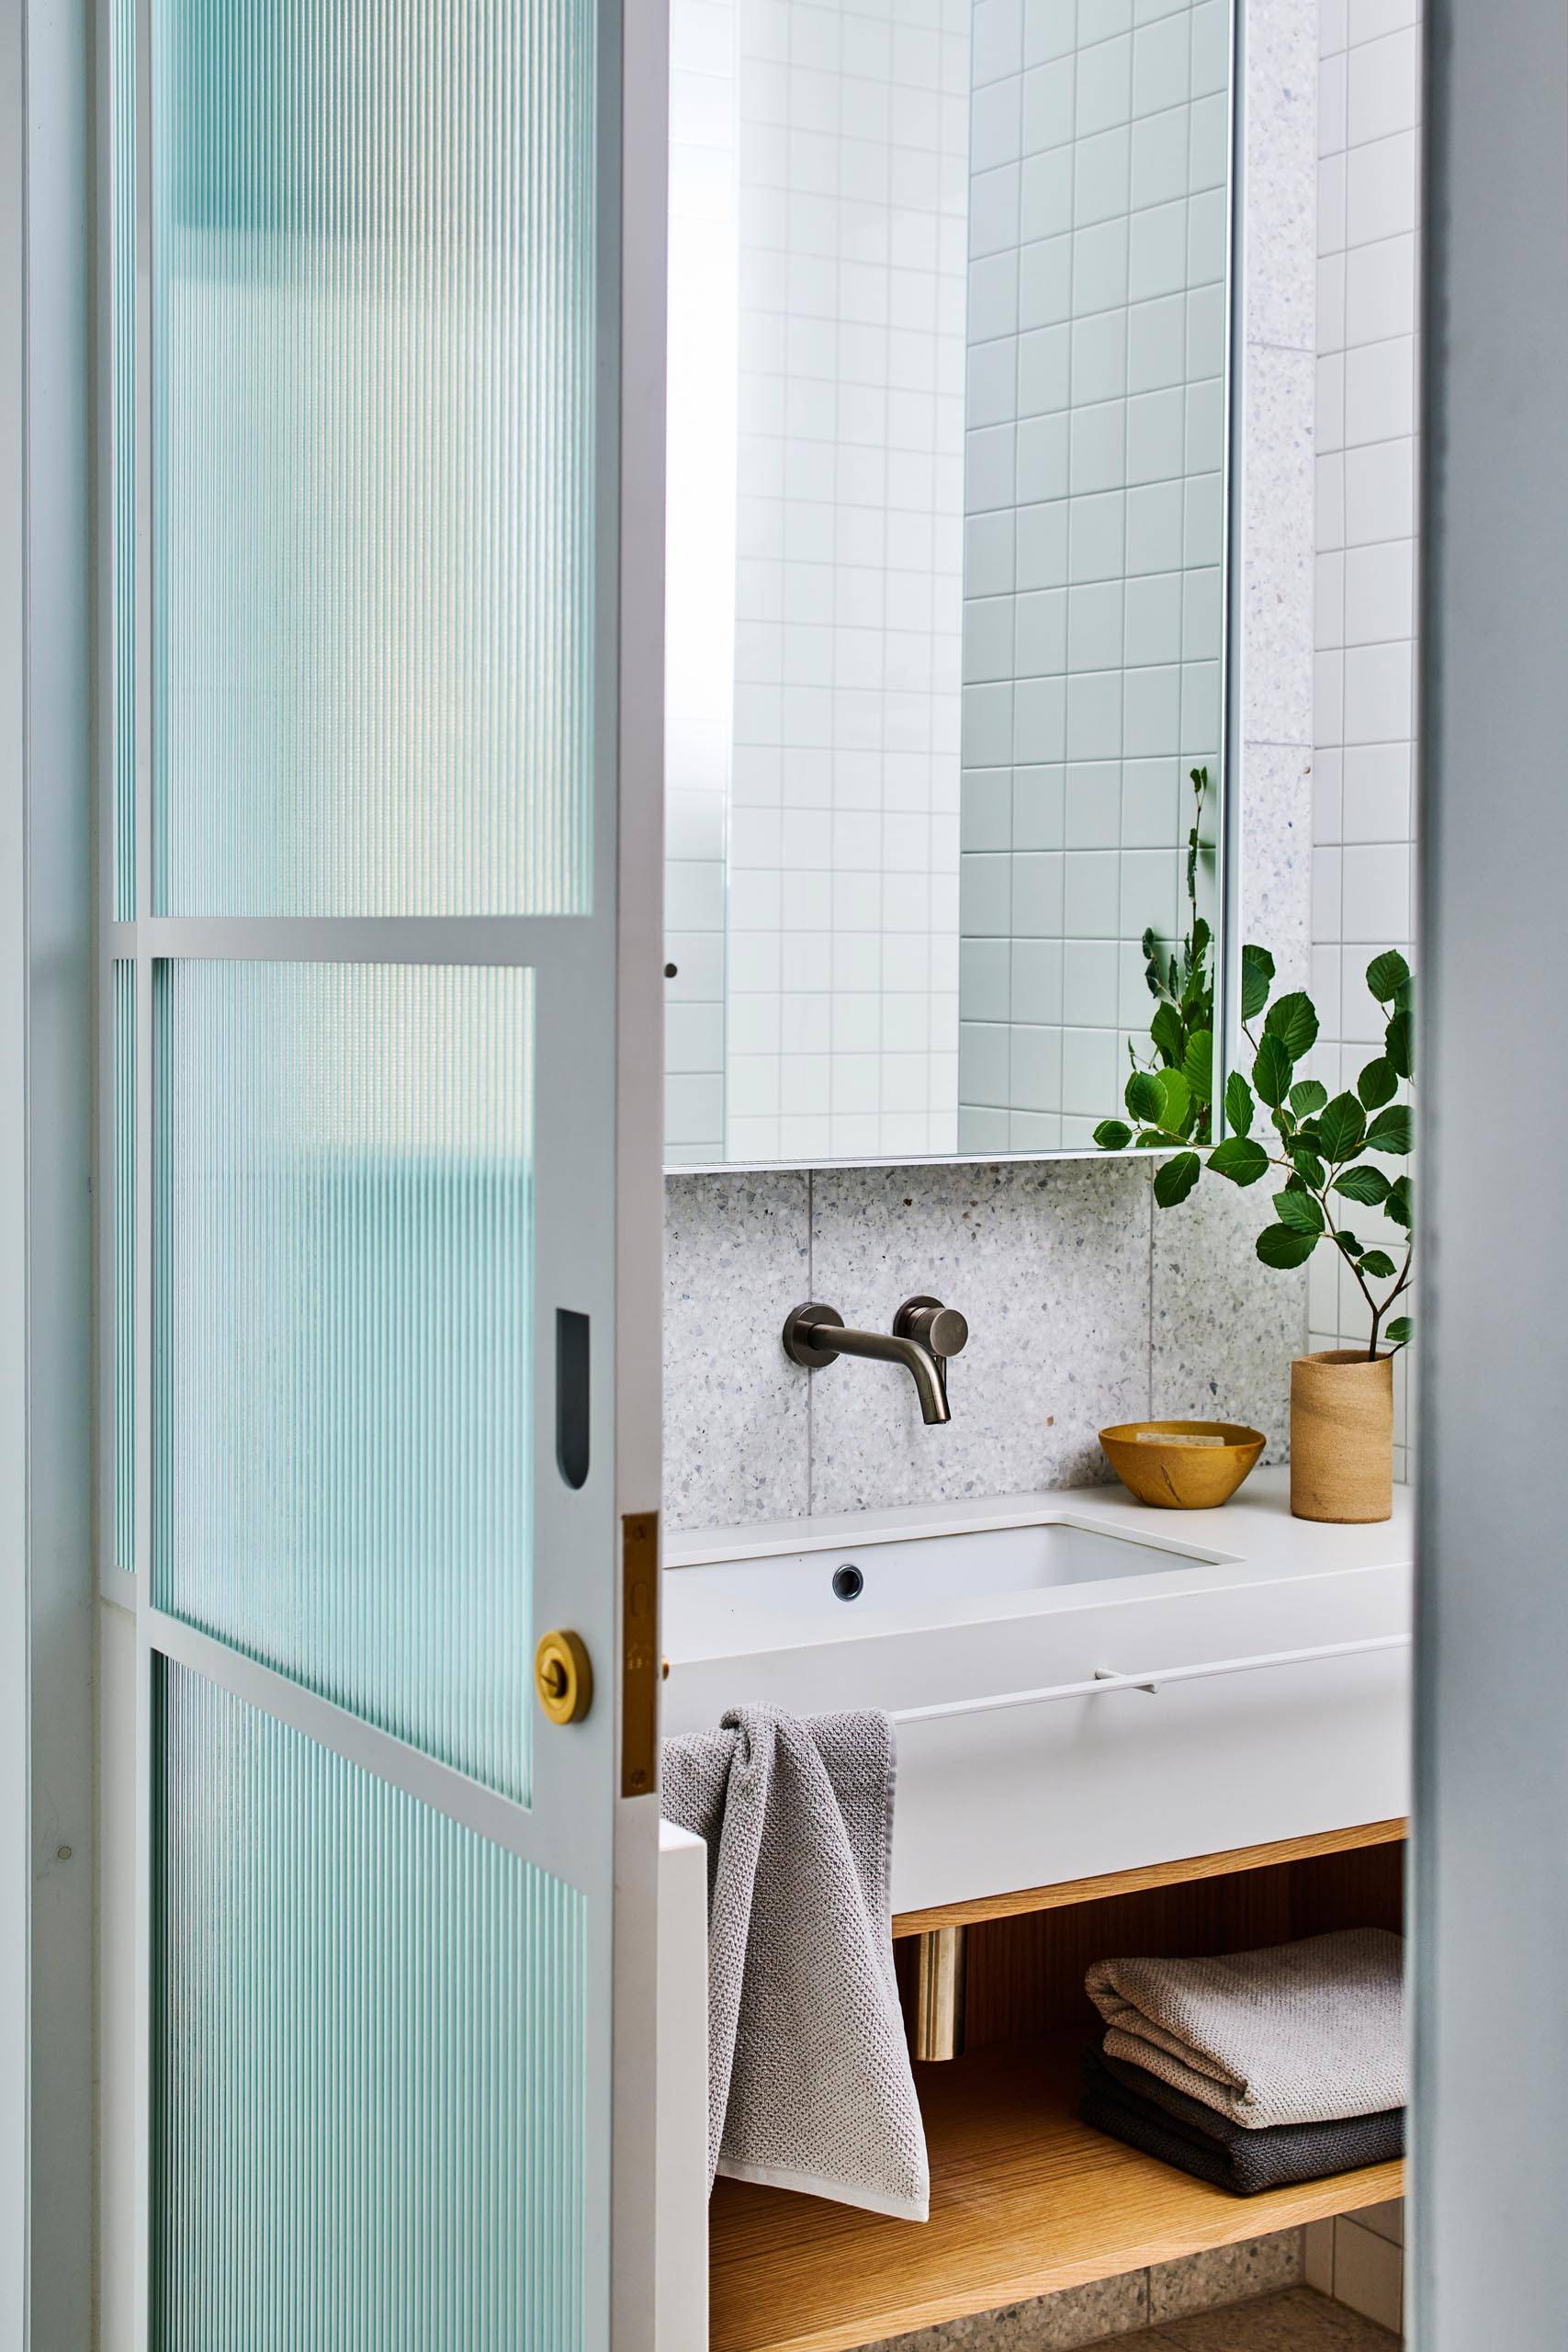 A sliding glass door with texture.